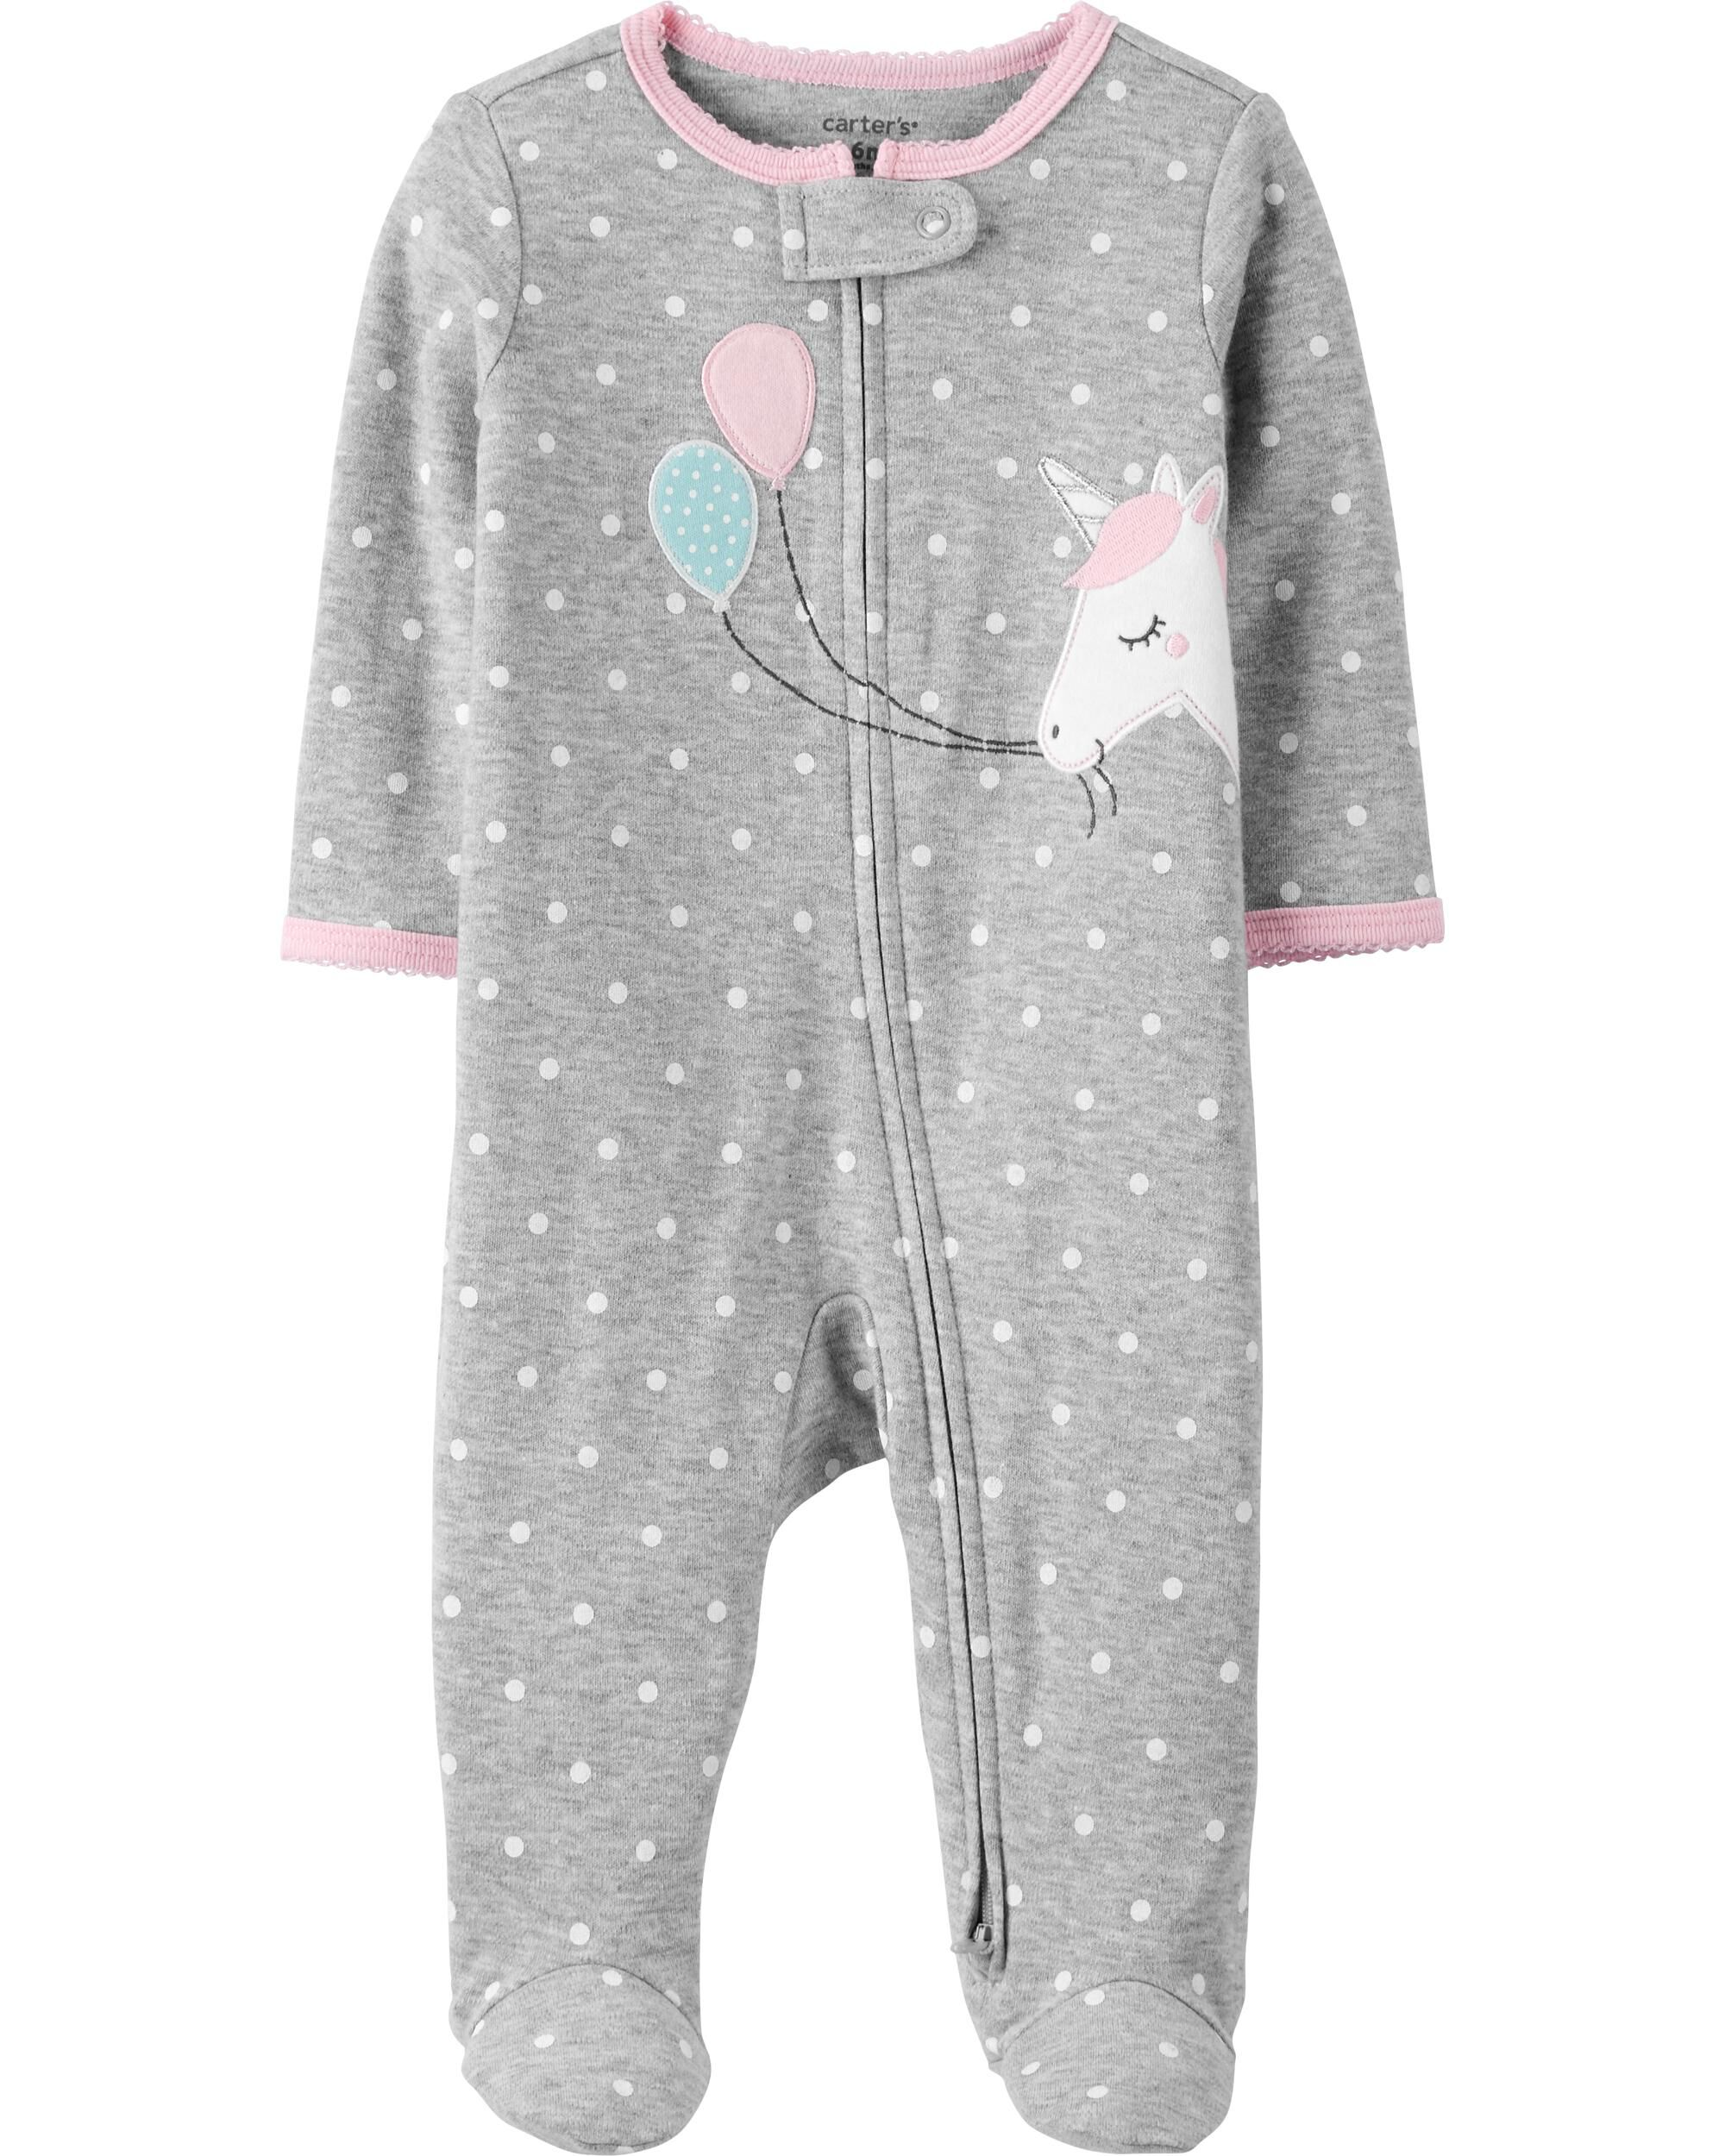 Carters Baby Girls Footed Coveralls